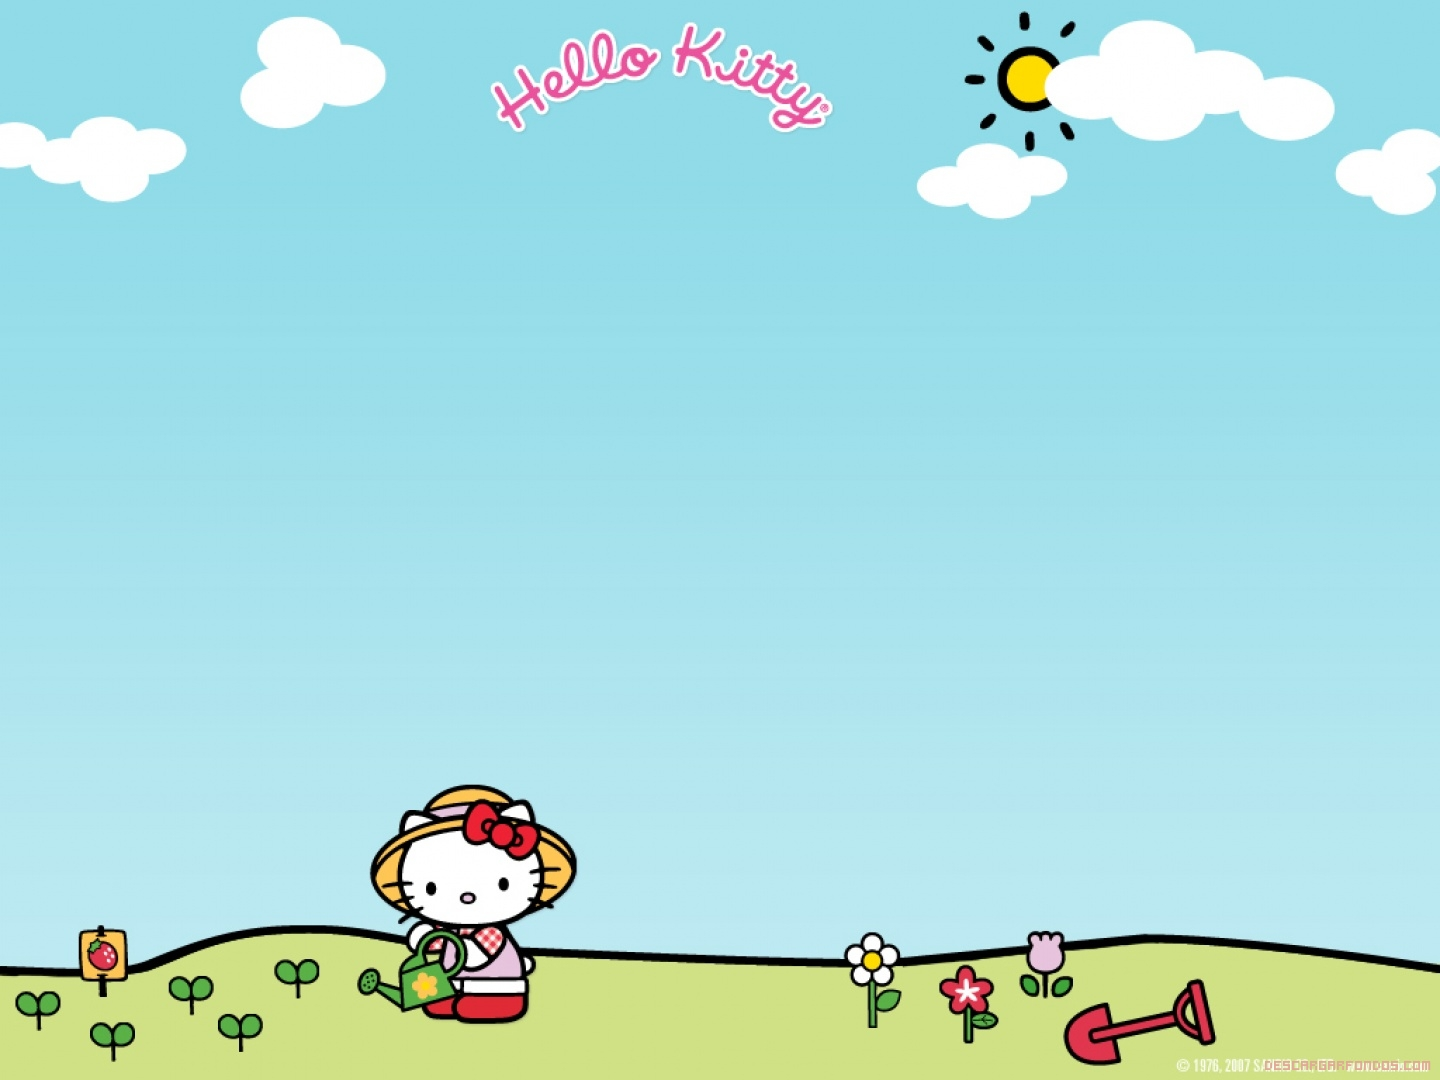 Hello Kitty riega sus flores